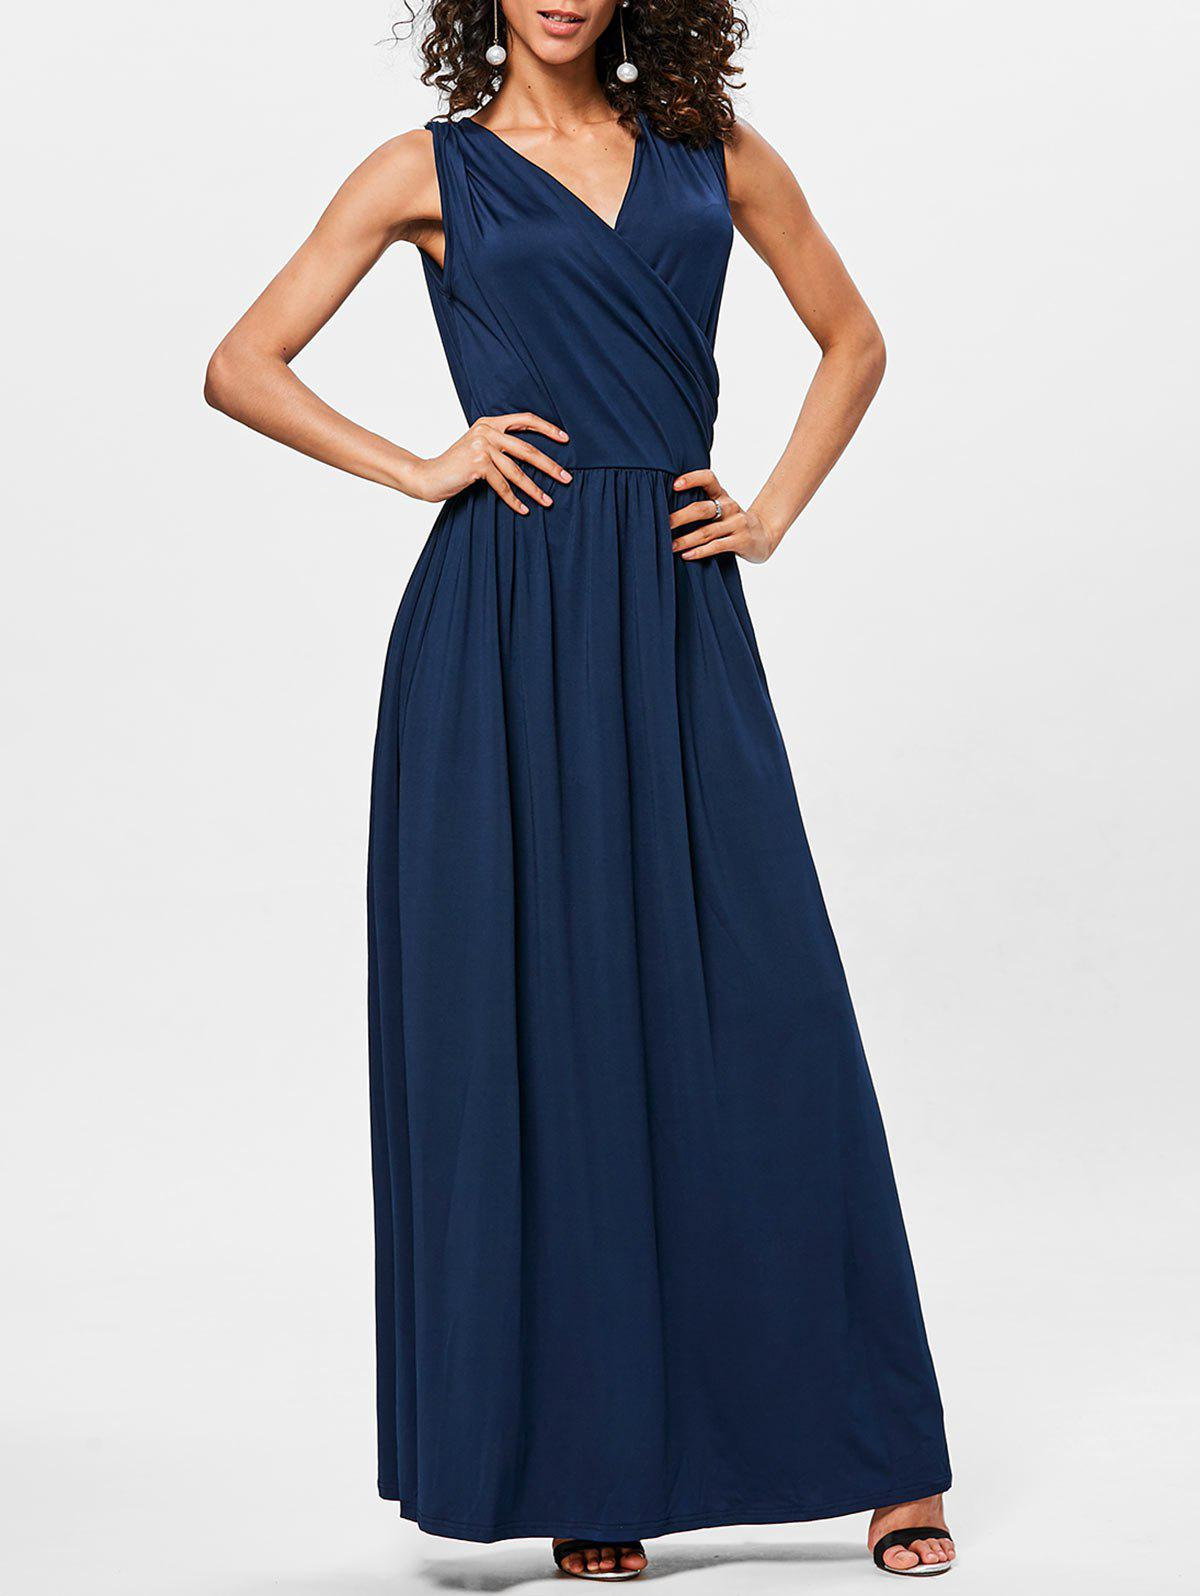 Floor Length V Neck Sleeveless Dress - MIDNIGHT BLUE XL